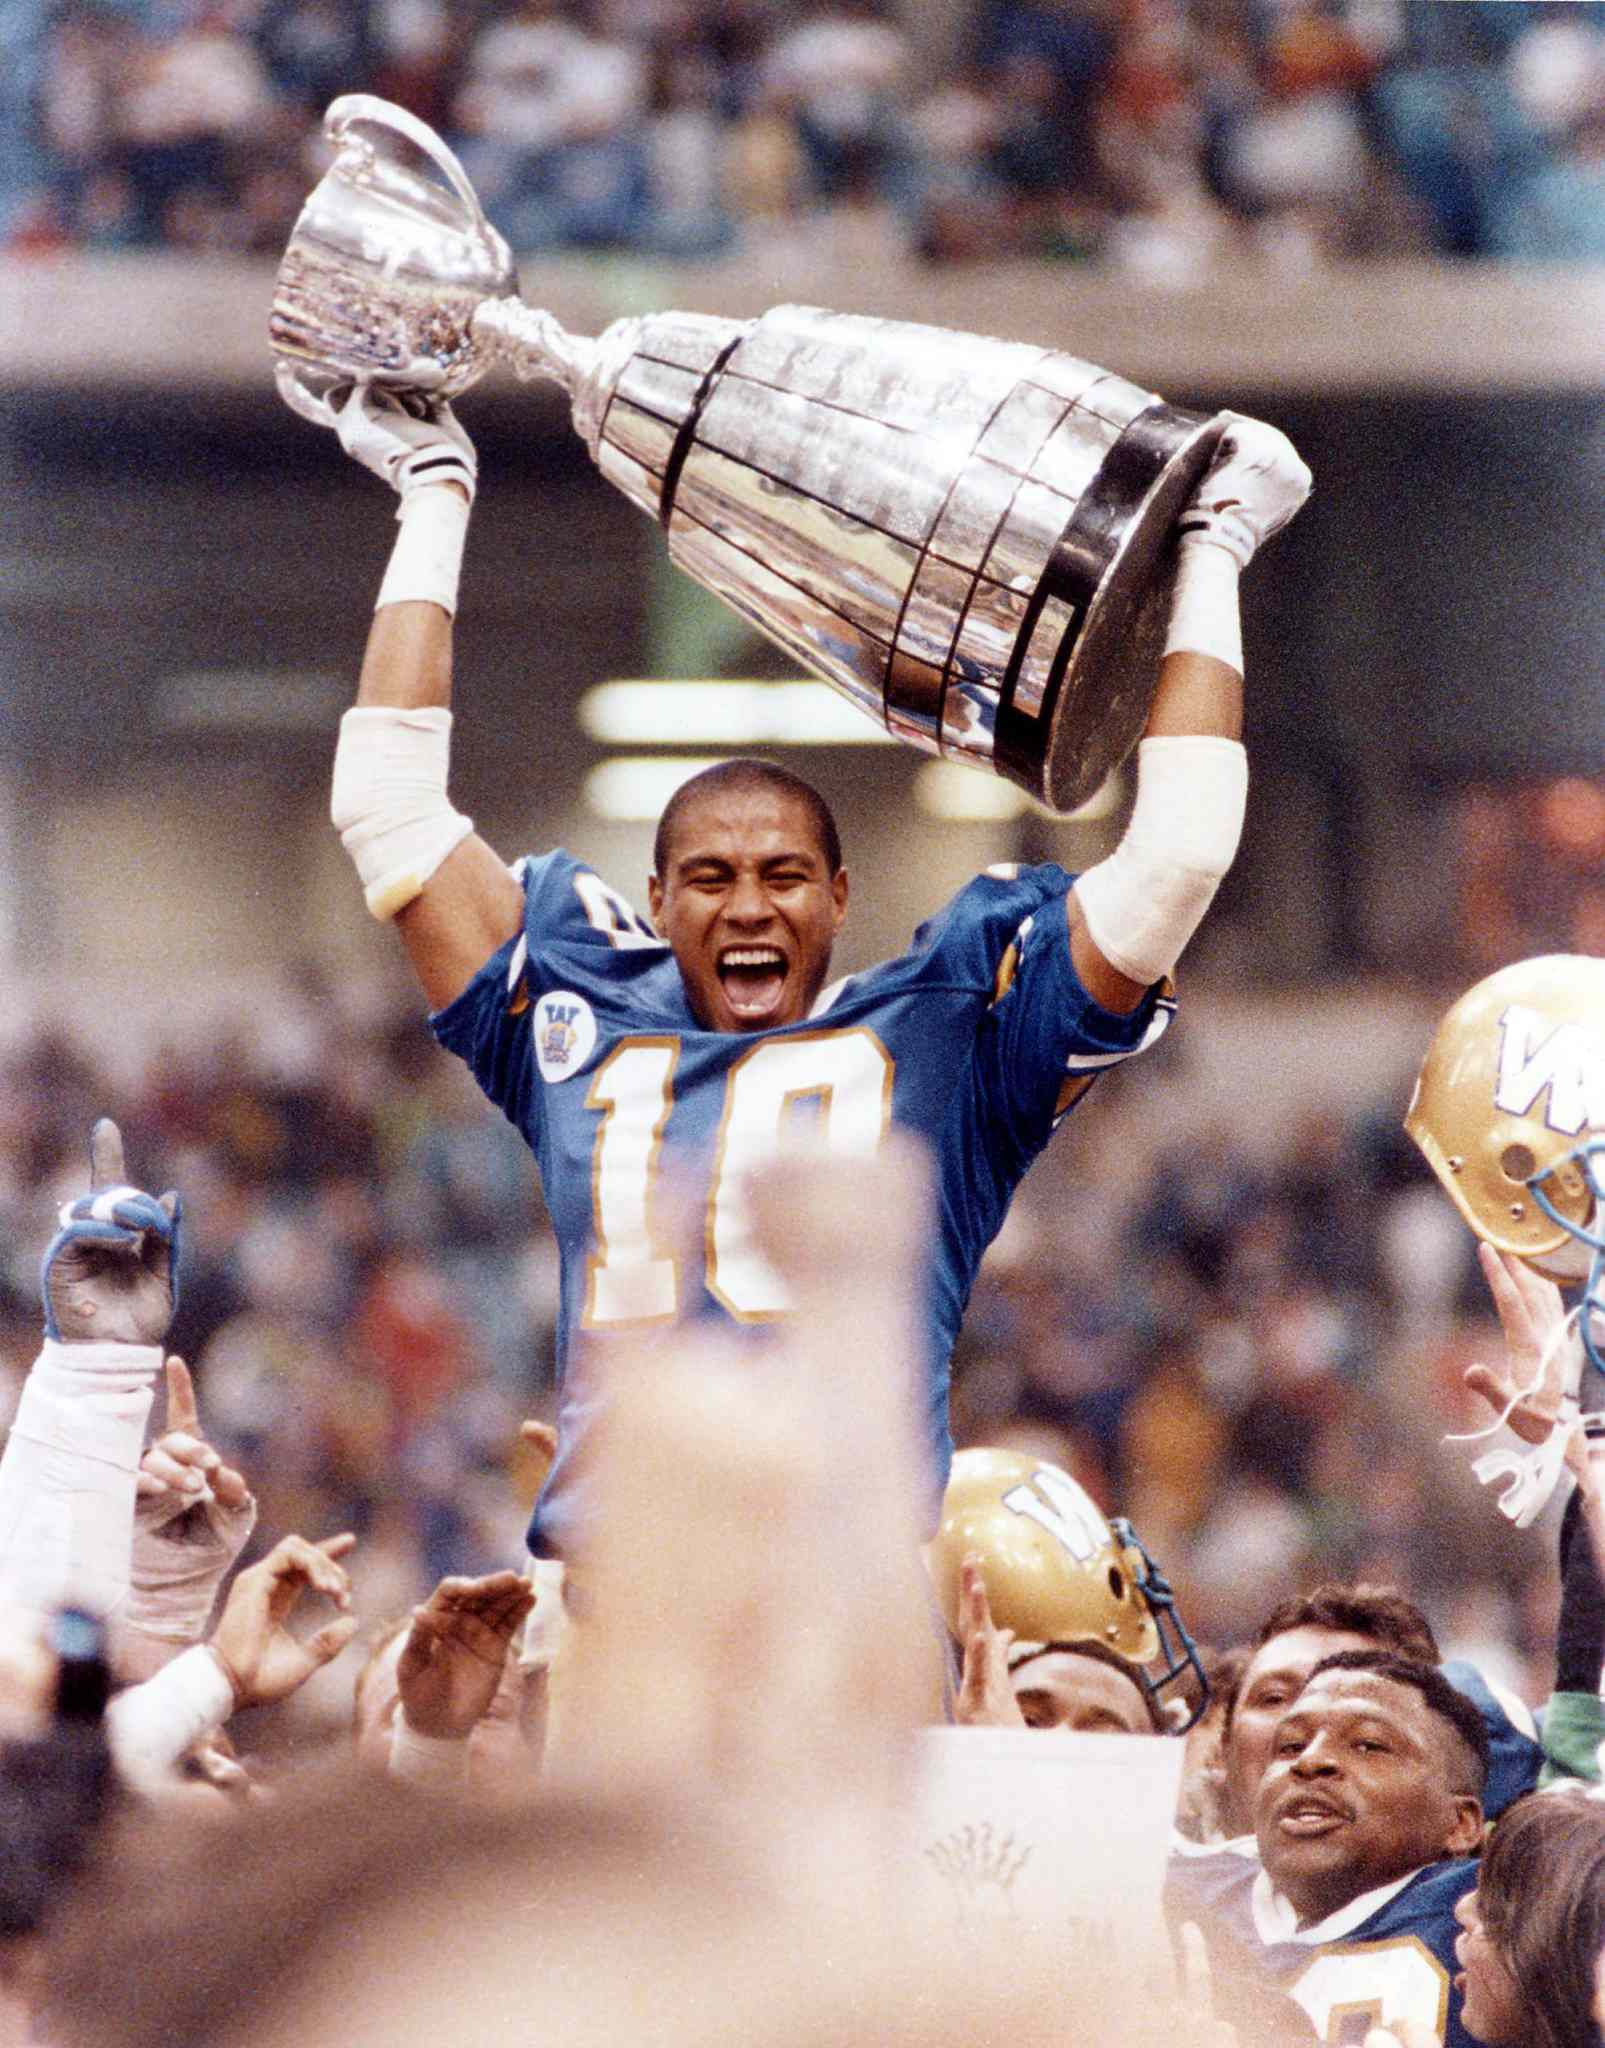 Winnipeg Blue Bombers' defensive back Rod Hill lets out a victory yell as he raises the Grey Cup over his head following the Bombers' 50-11 victory over the Edmonton Eskimos in Vancouver on November 25, 1990.